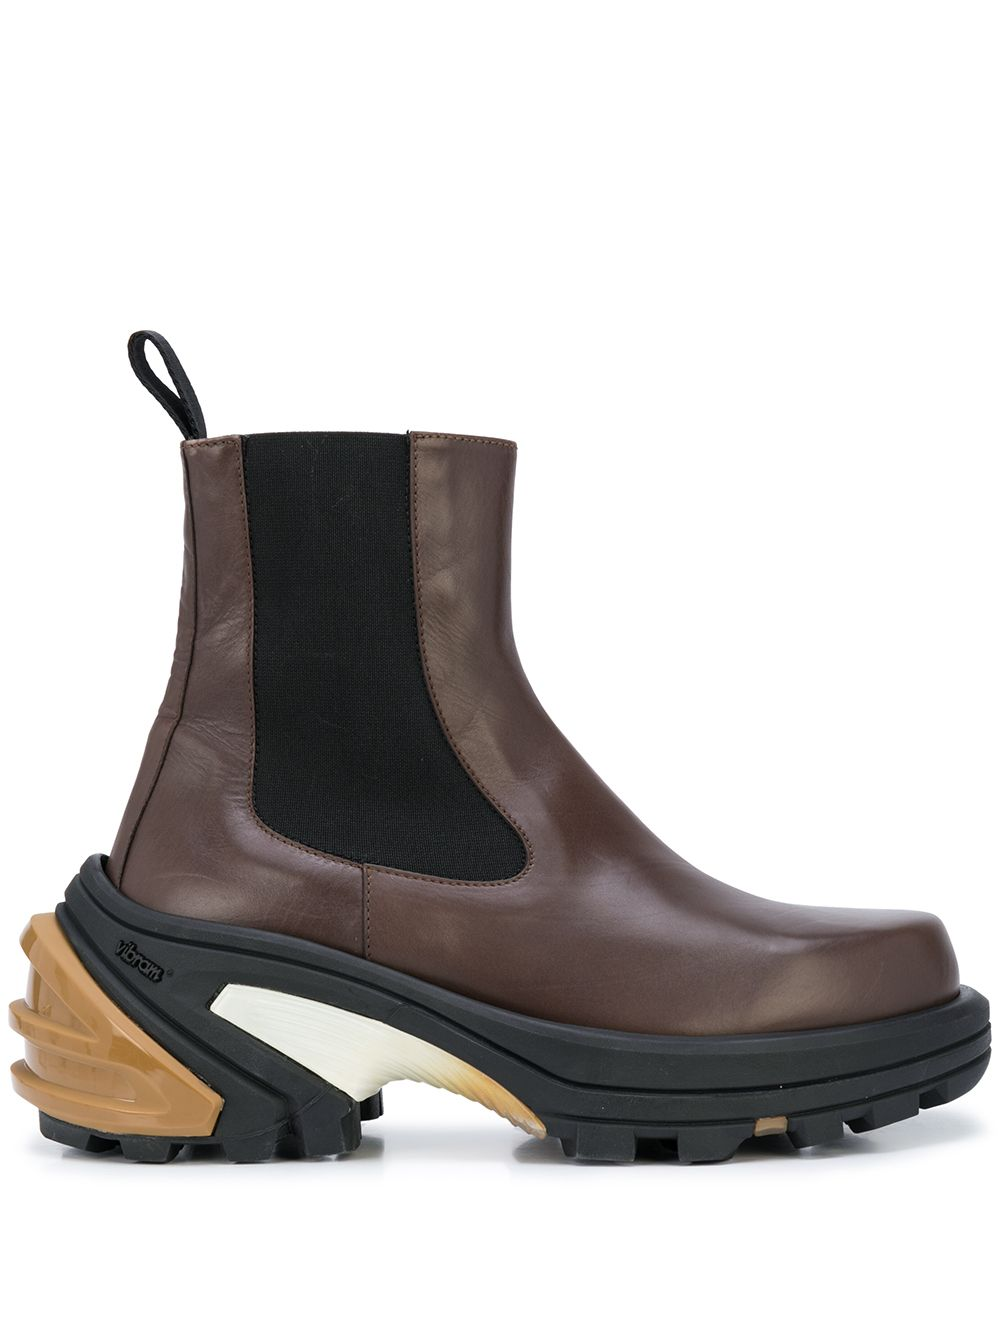 1017 ALYX 9SM MEN REMOVABLE VIBRAM SOLE CHELSEA BOOTS